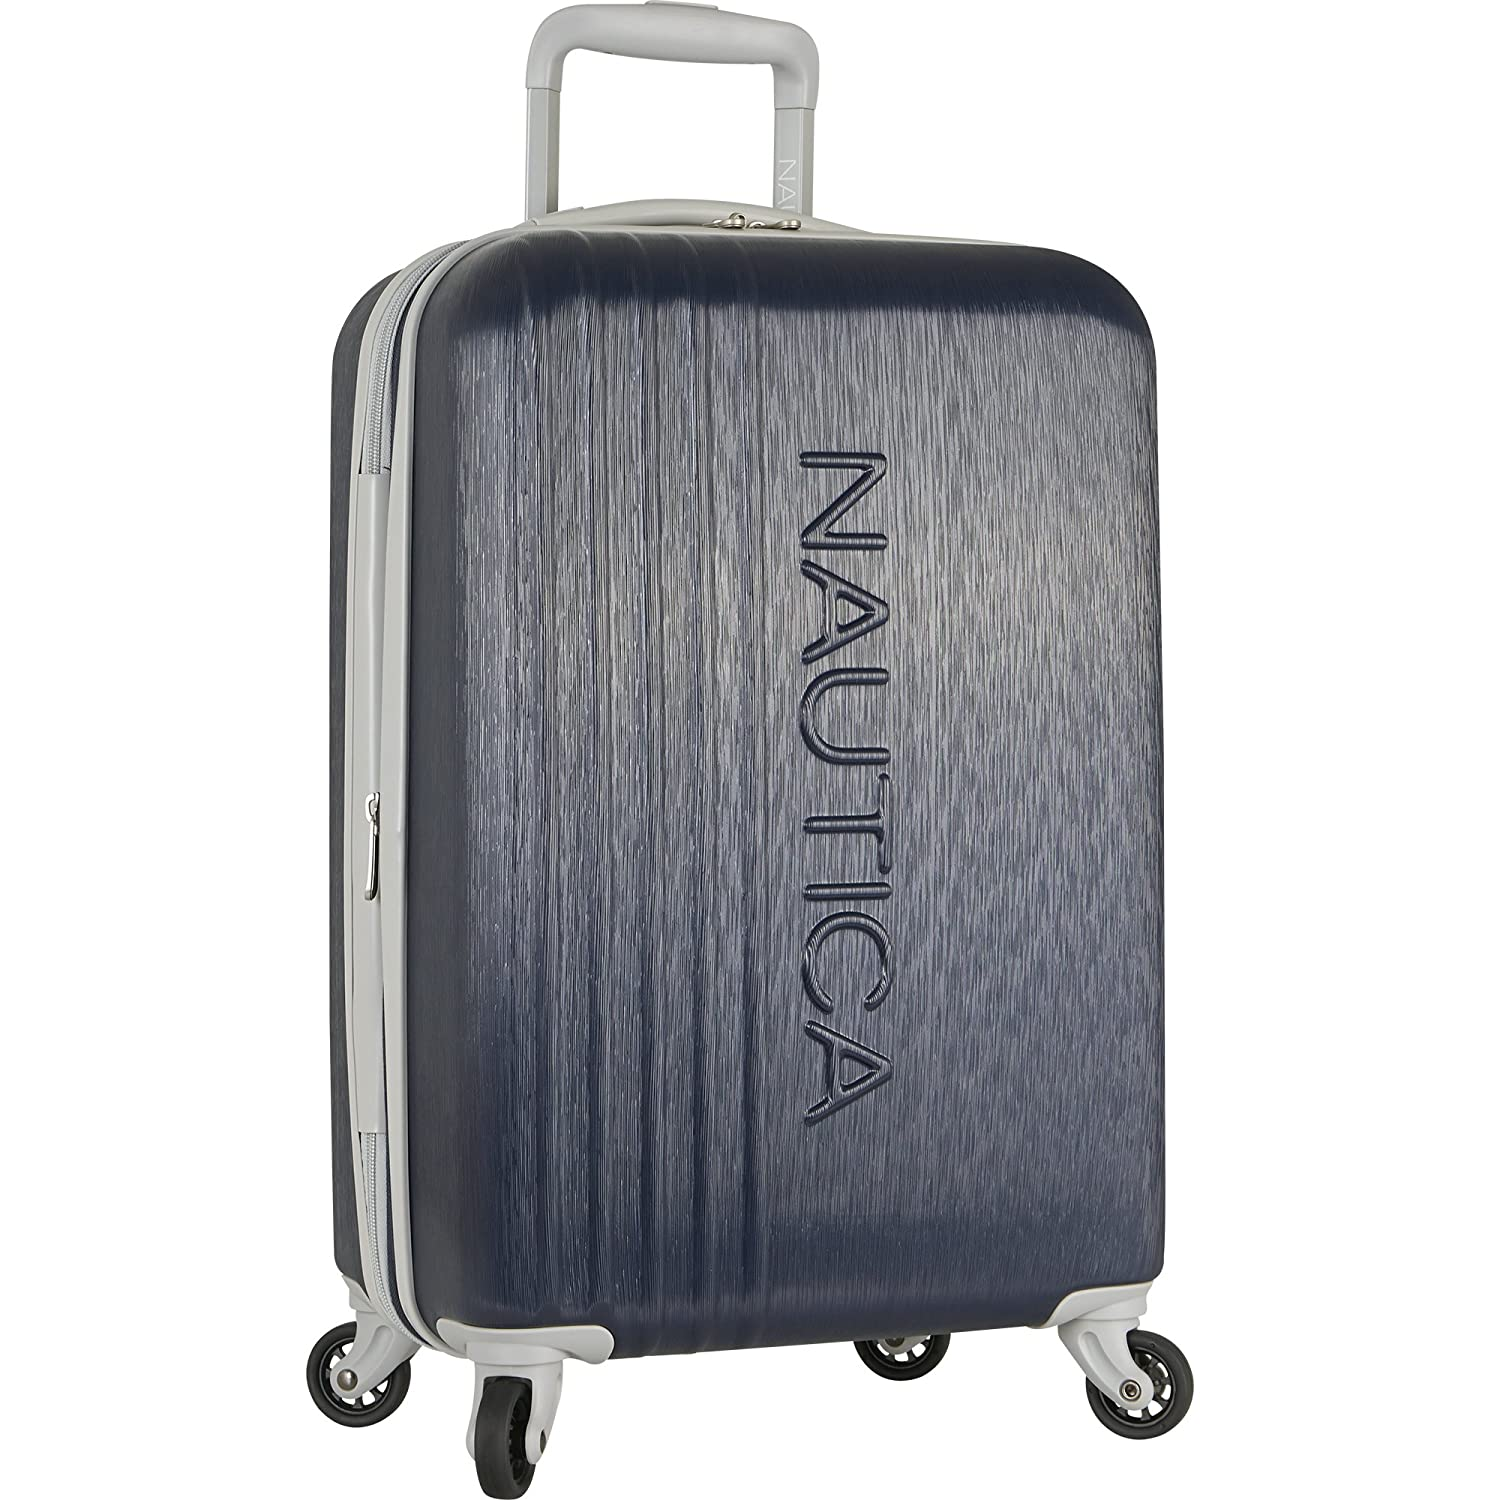 031a0cdafd5d Nautica Hardside Carry On Luggage - 20 Inch Spinner Wheels Suitcase  Lightweight Rolling Travel Bag for Under Seat